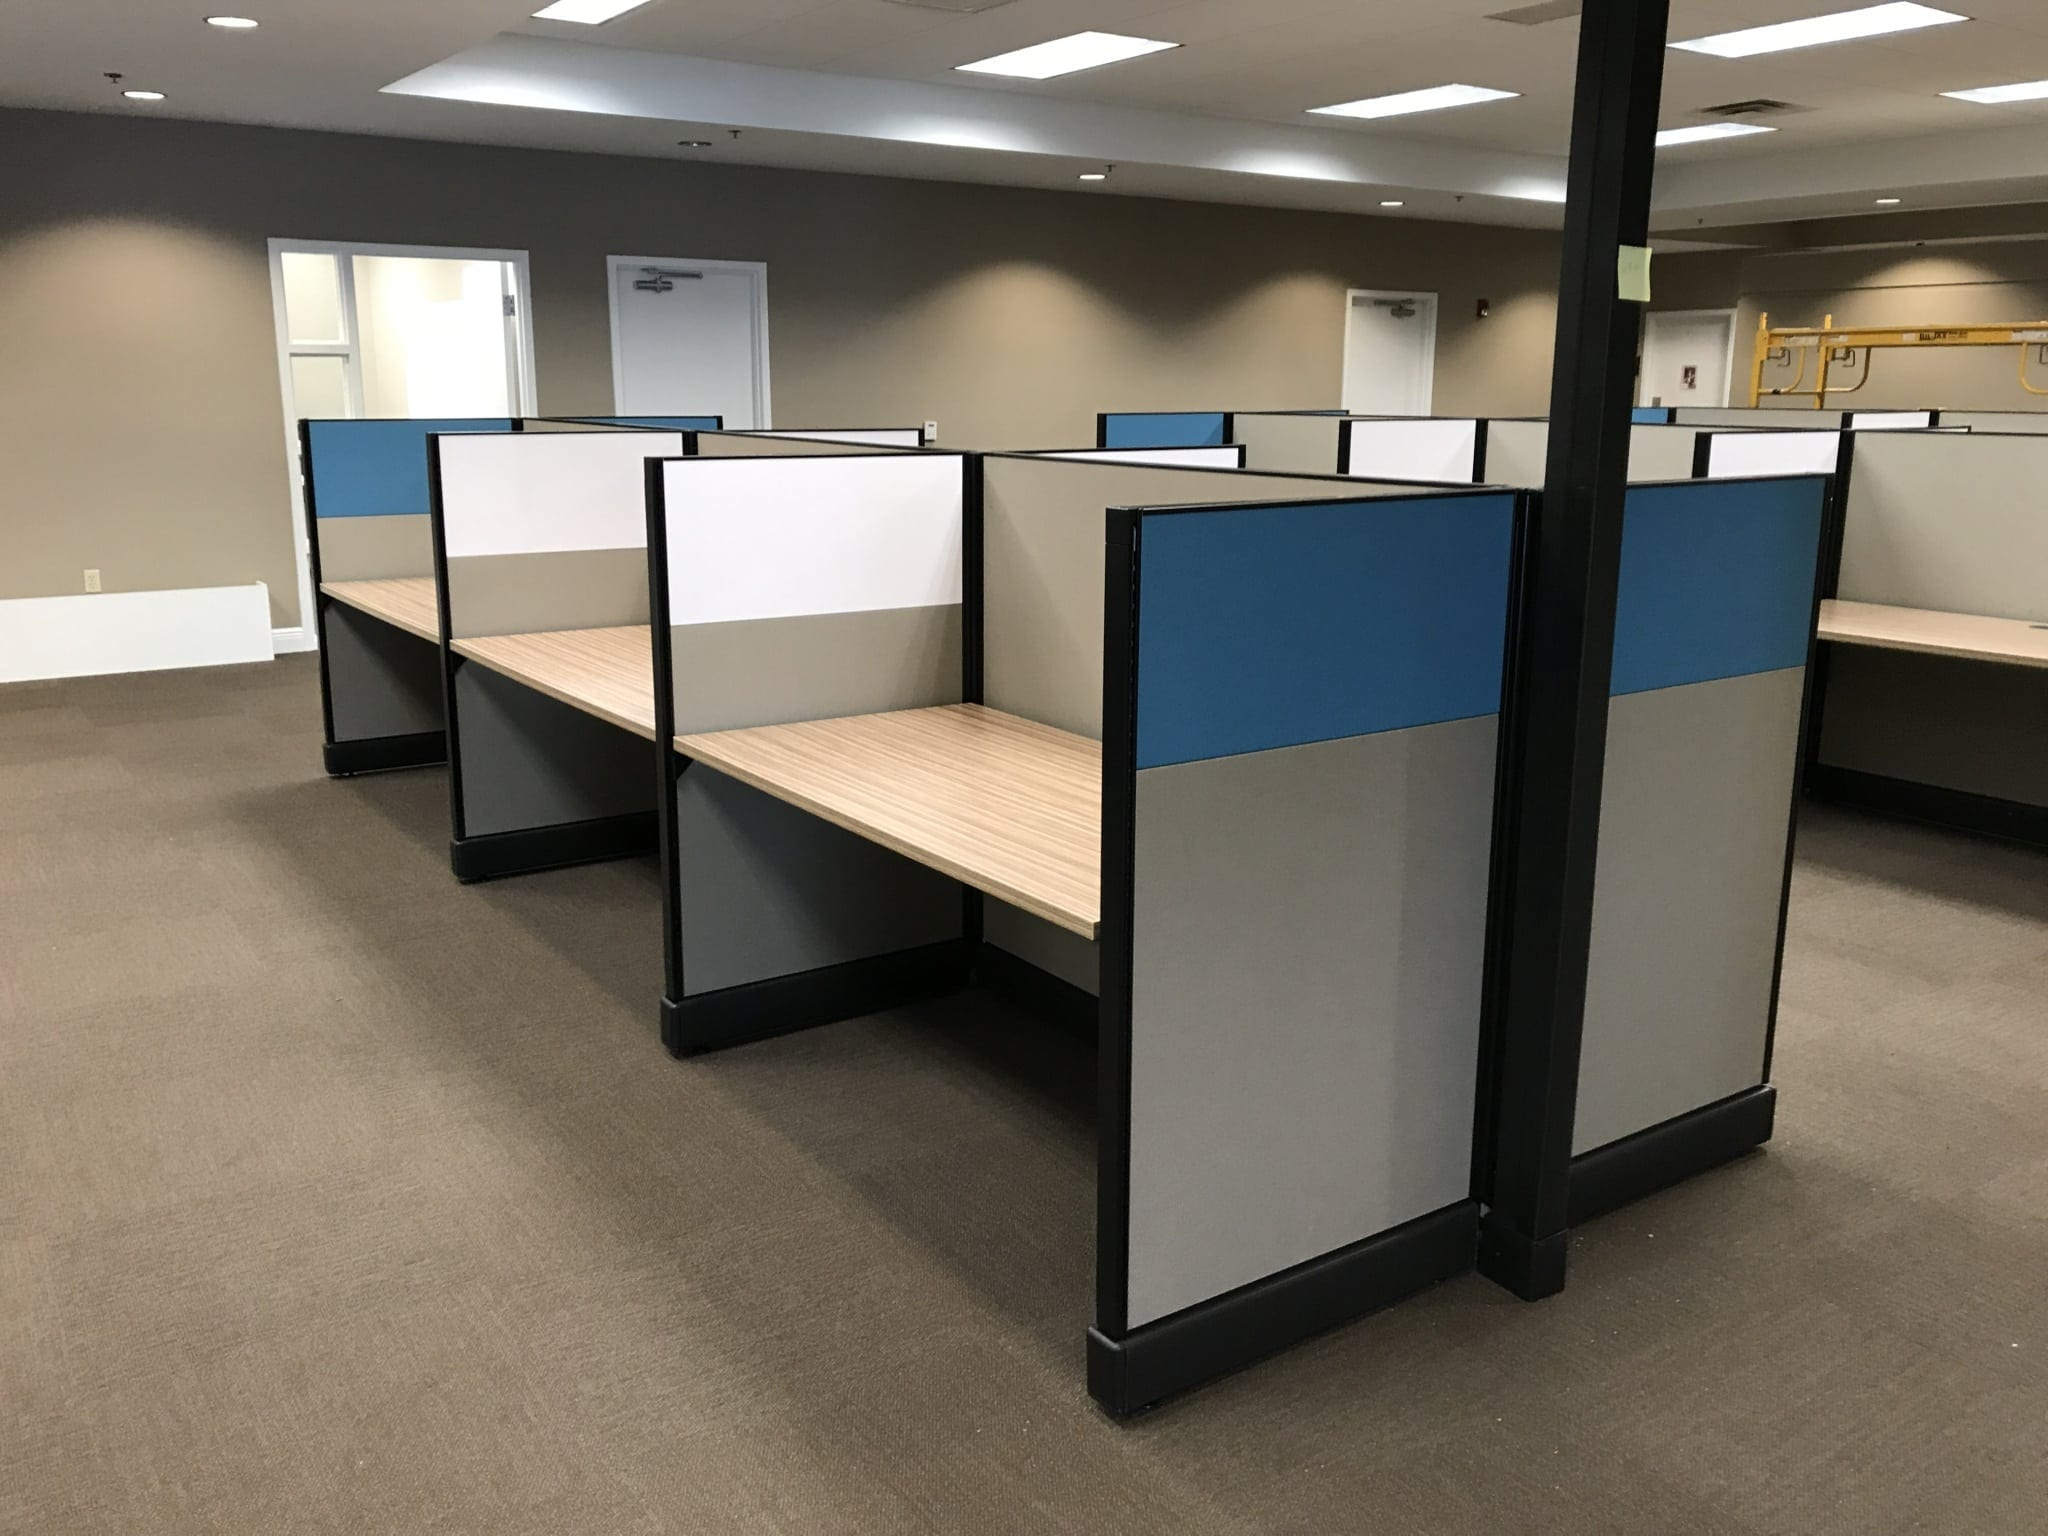 Awesome Office Furniture Installation In Auto Customs/Real Truck By Quality  Installers.